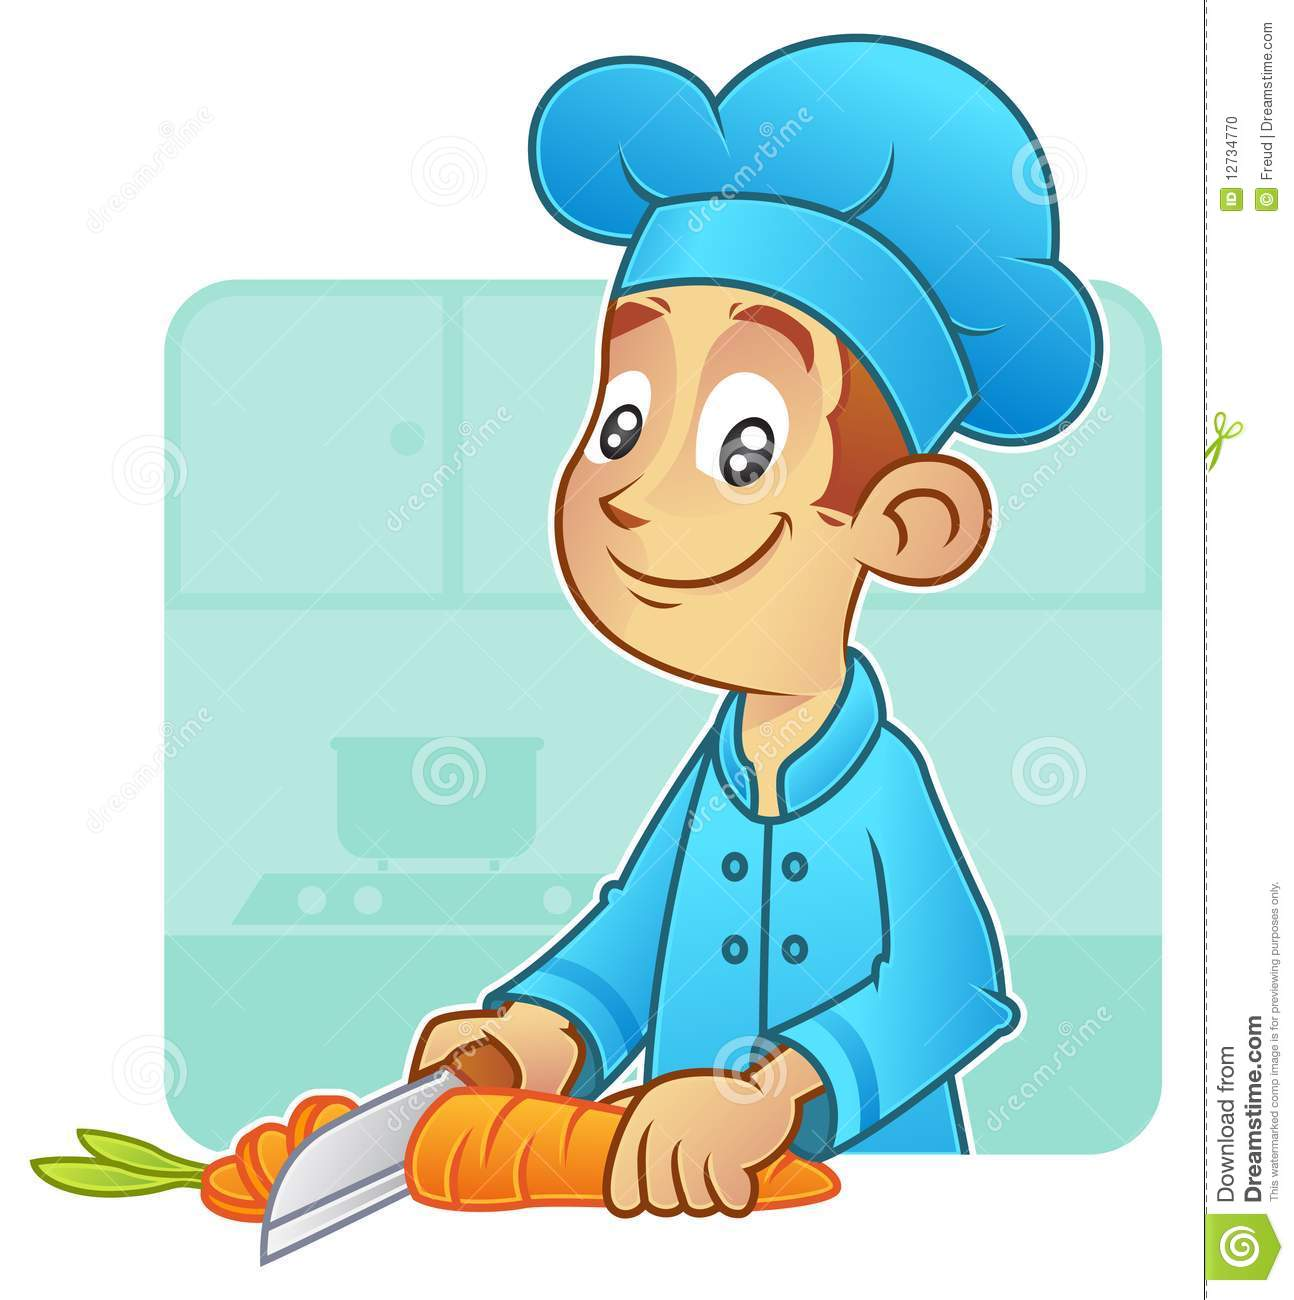 Chef chopping clipart transparent library Chopping Food Cliparts | Free download best Chopping Food Cliparts ... transparent library